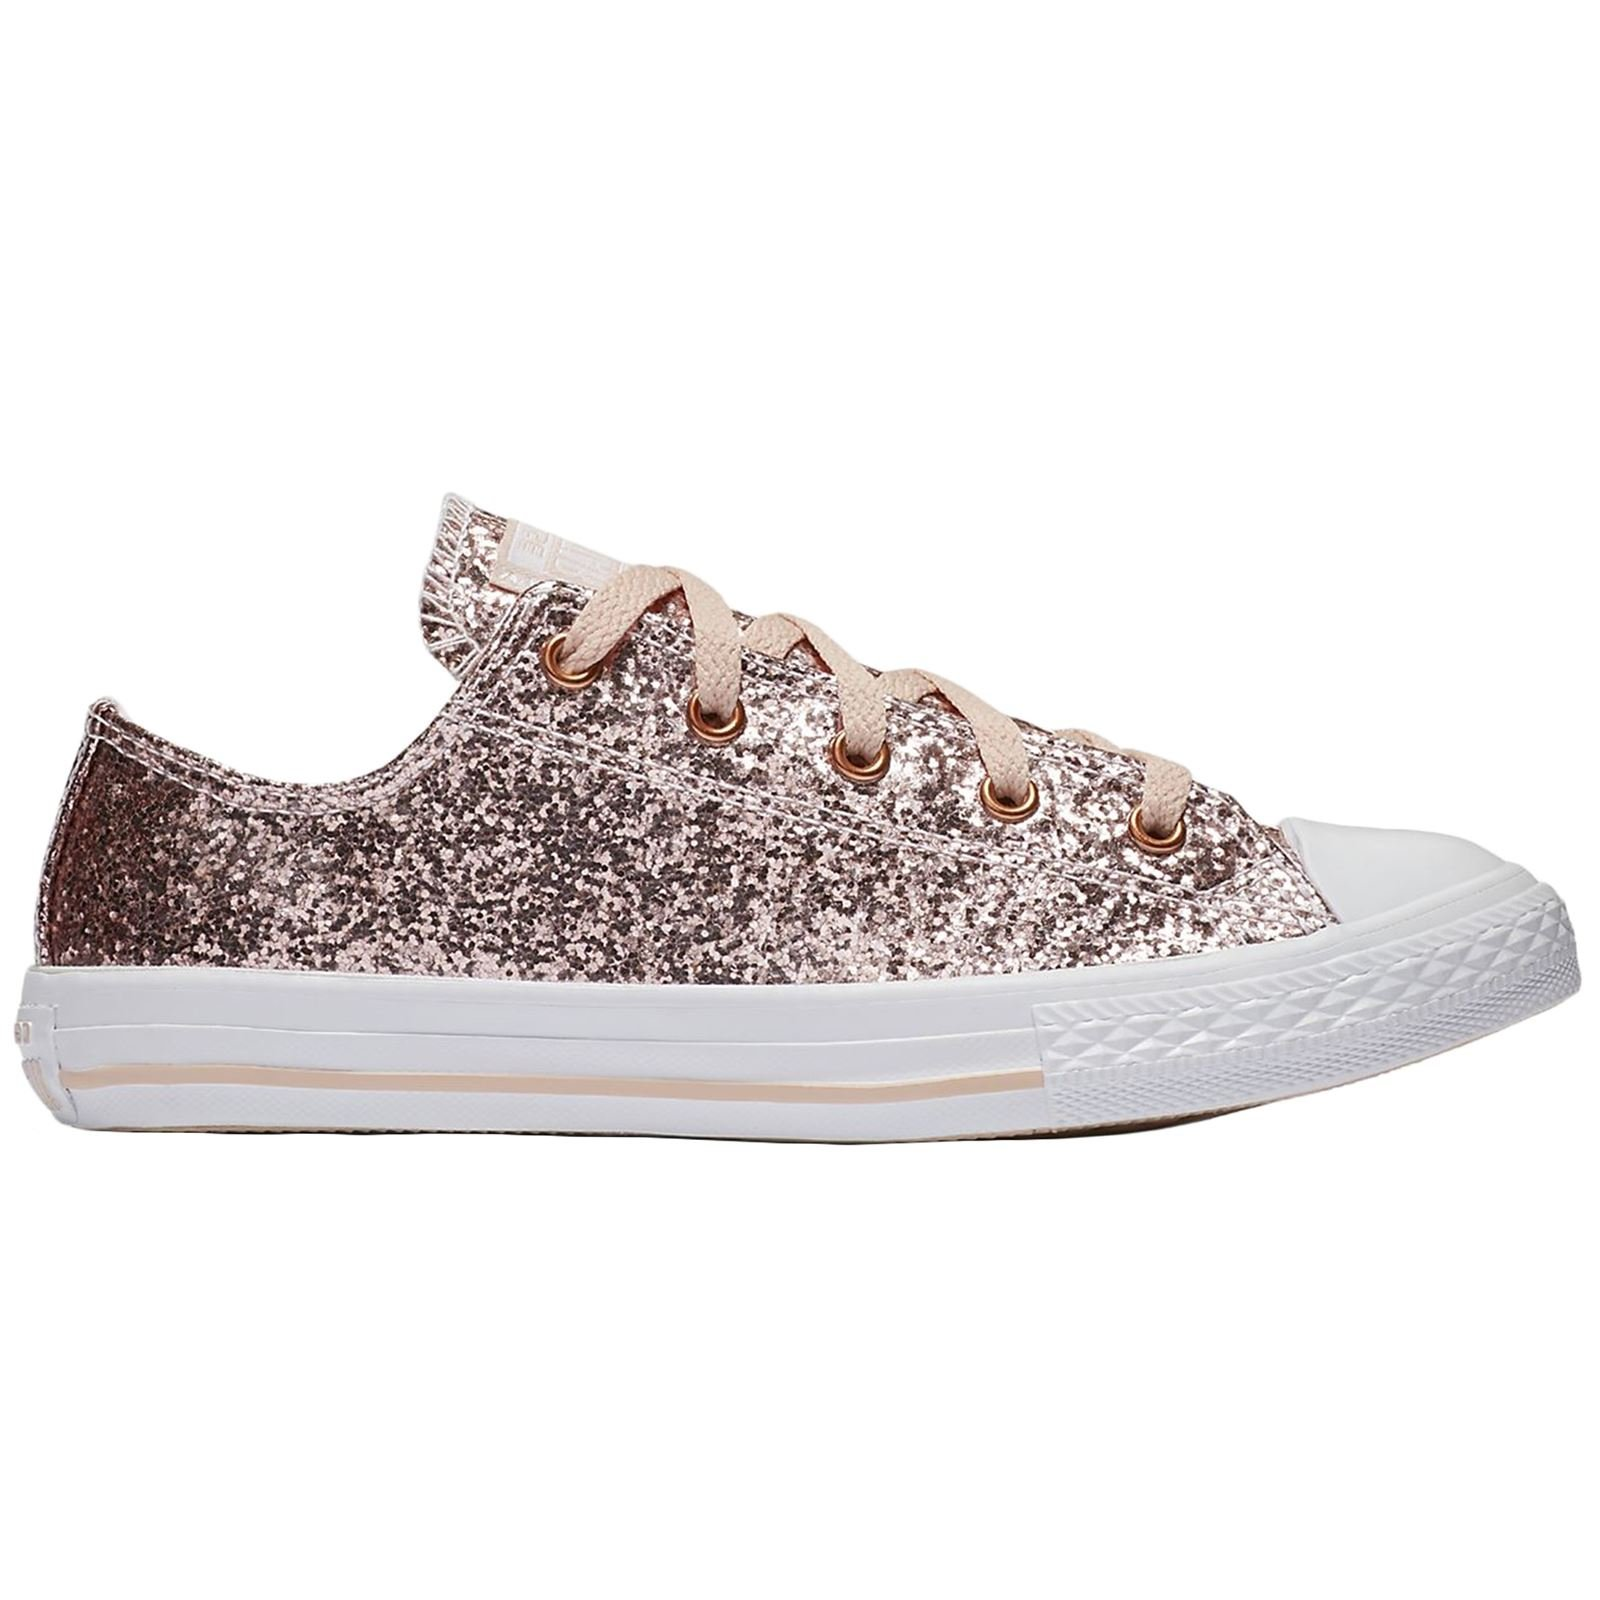 Converse Chuck Taylor All Star Glitter Dust Pink Synthetic Youth US 4½